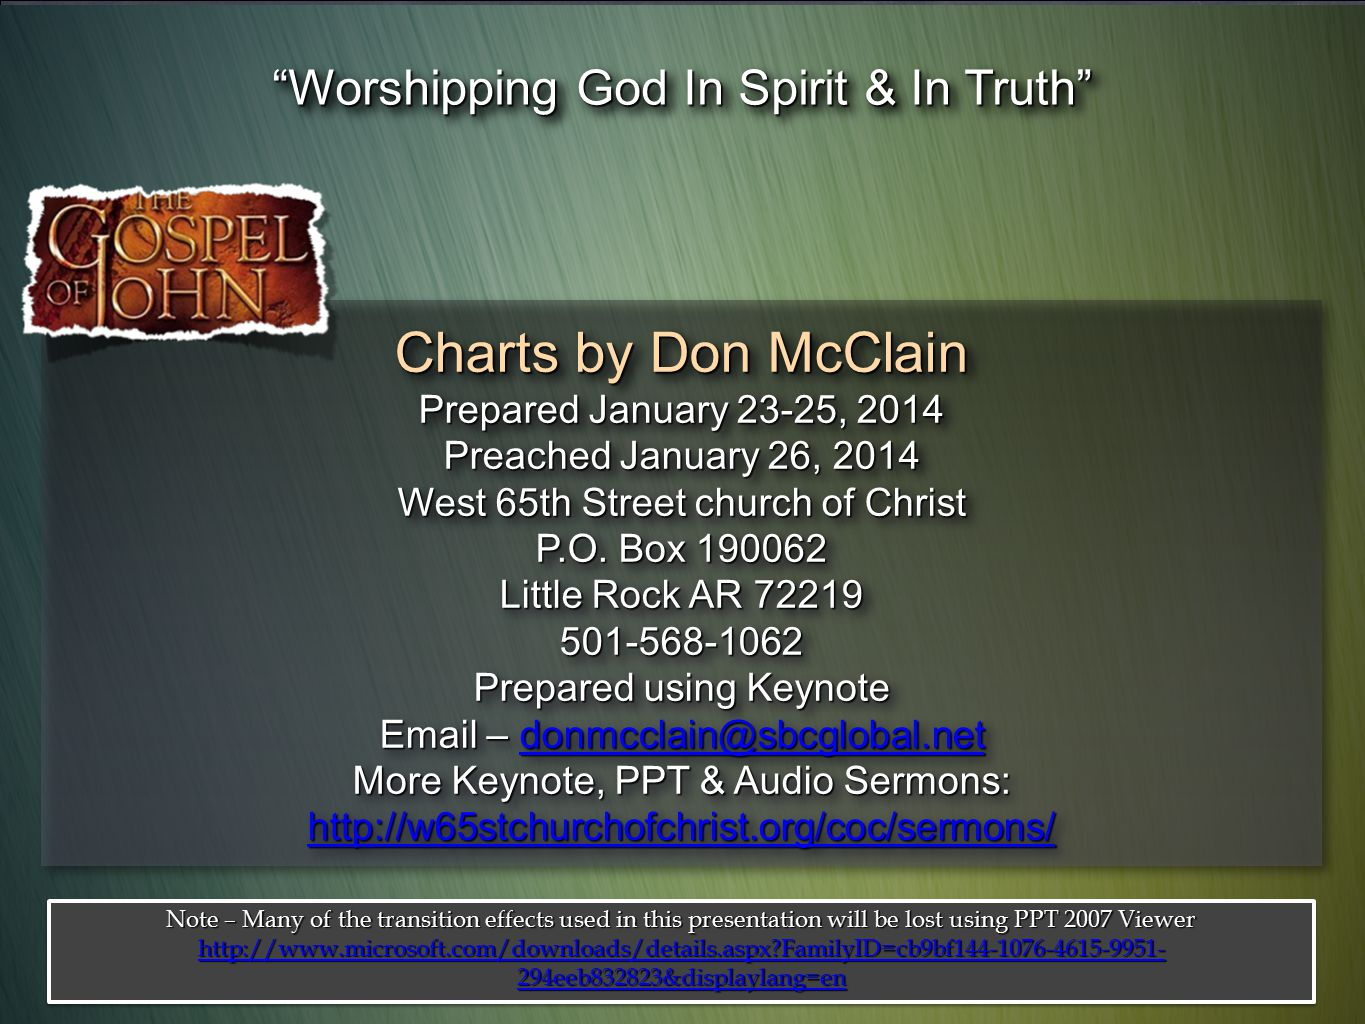 Charts by Don McClain Prepared January 23-25, 2014 Preached January 26, 2014 West 65th Street church of Christ P.O. Box 190062 Little Rock AR 72219 50